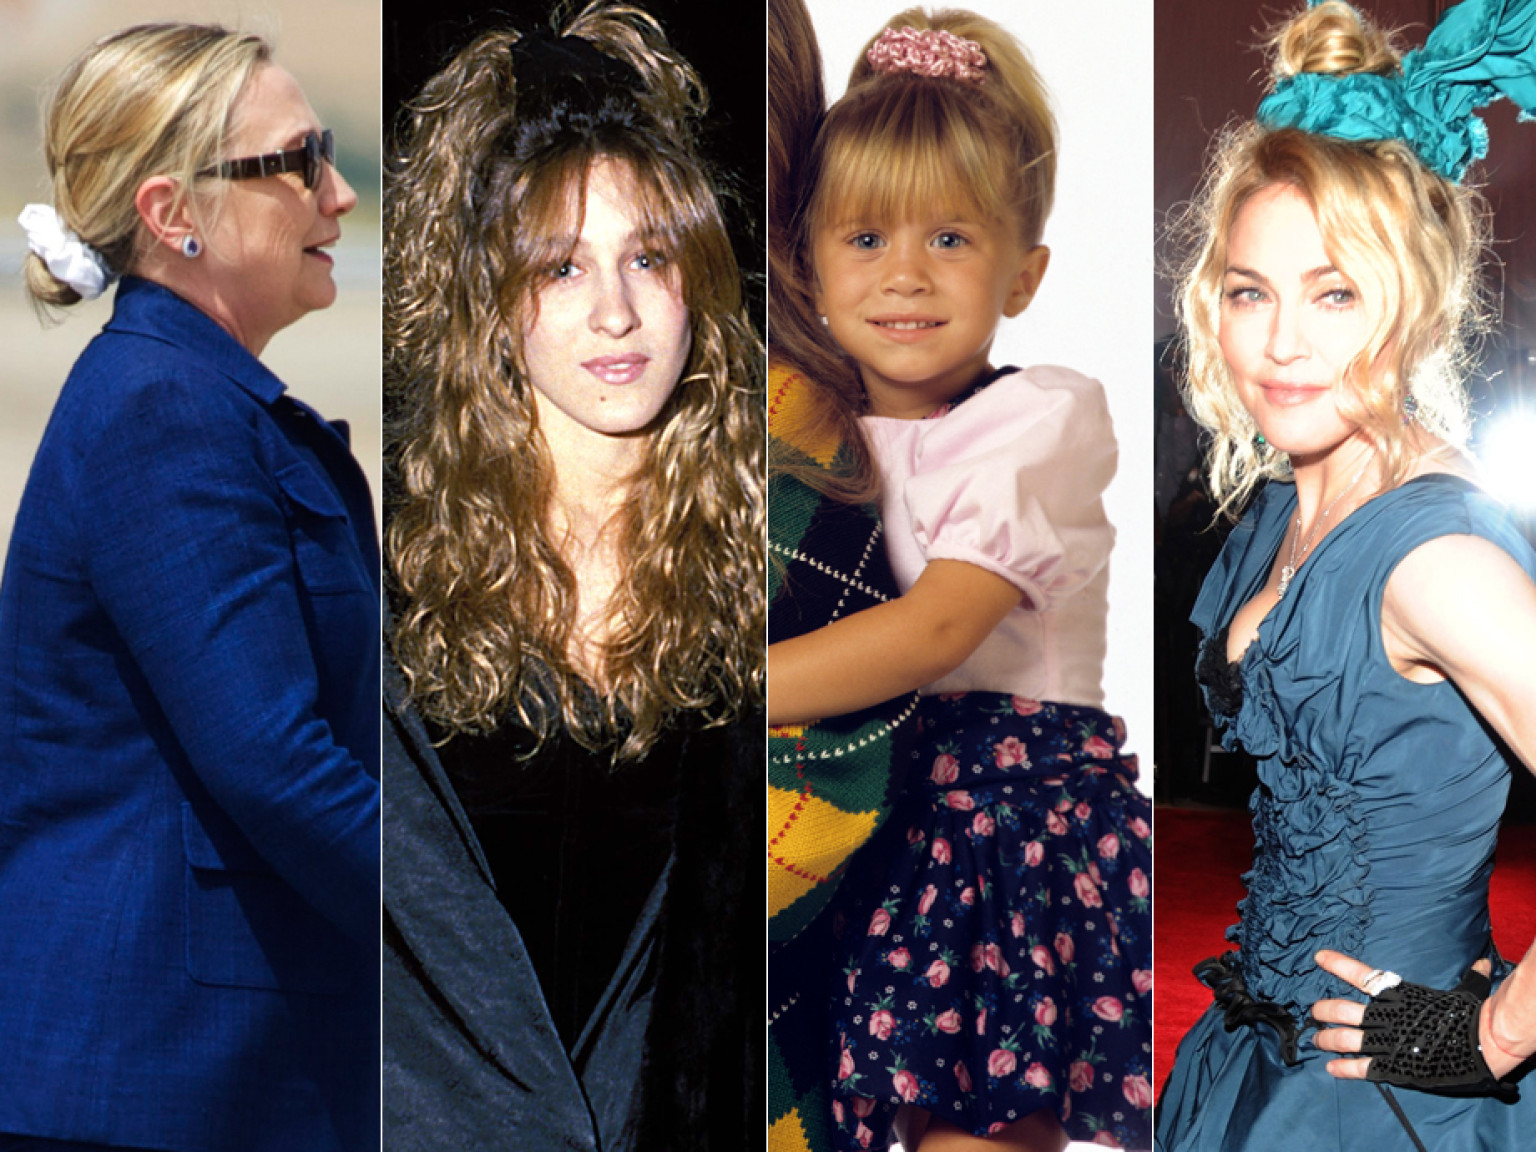 In Defense Of The Scrunchie Why Its Time To Get Over Our